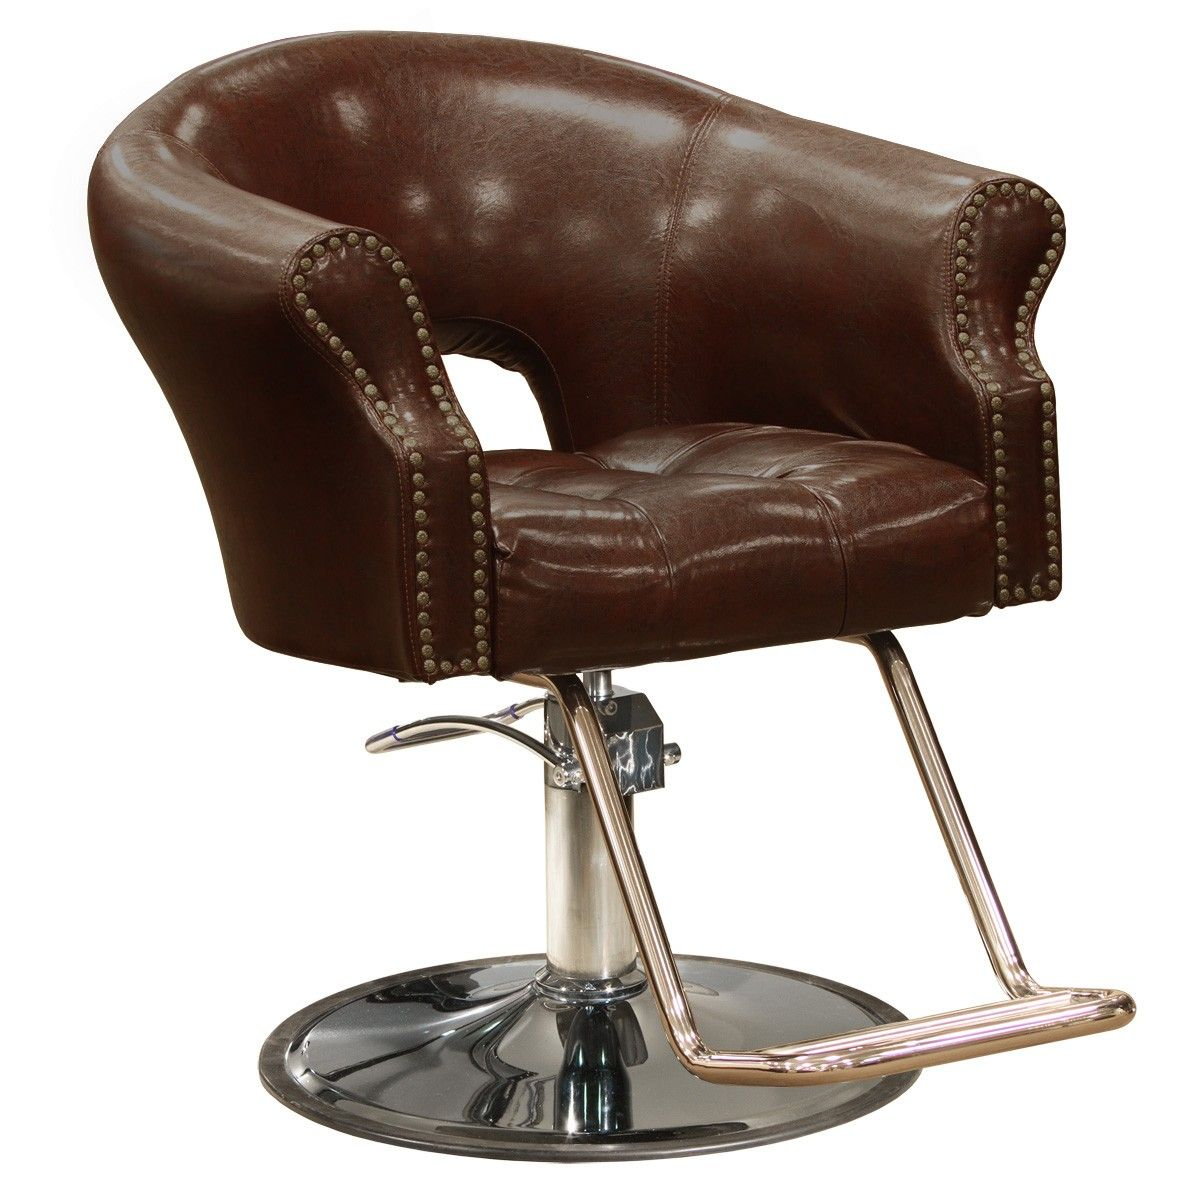 The Arnage styling chair is shown in Antique Brown with round base and dual  bar footrest. - The+Arnage+styling+chair+is+part+of+our+Avei+line+of+salon+furniture